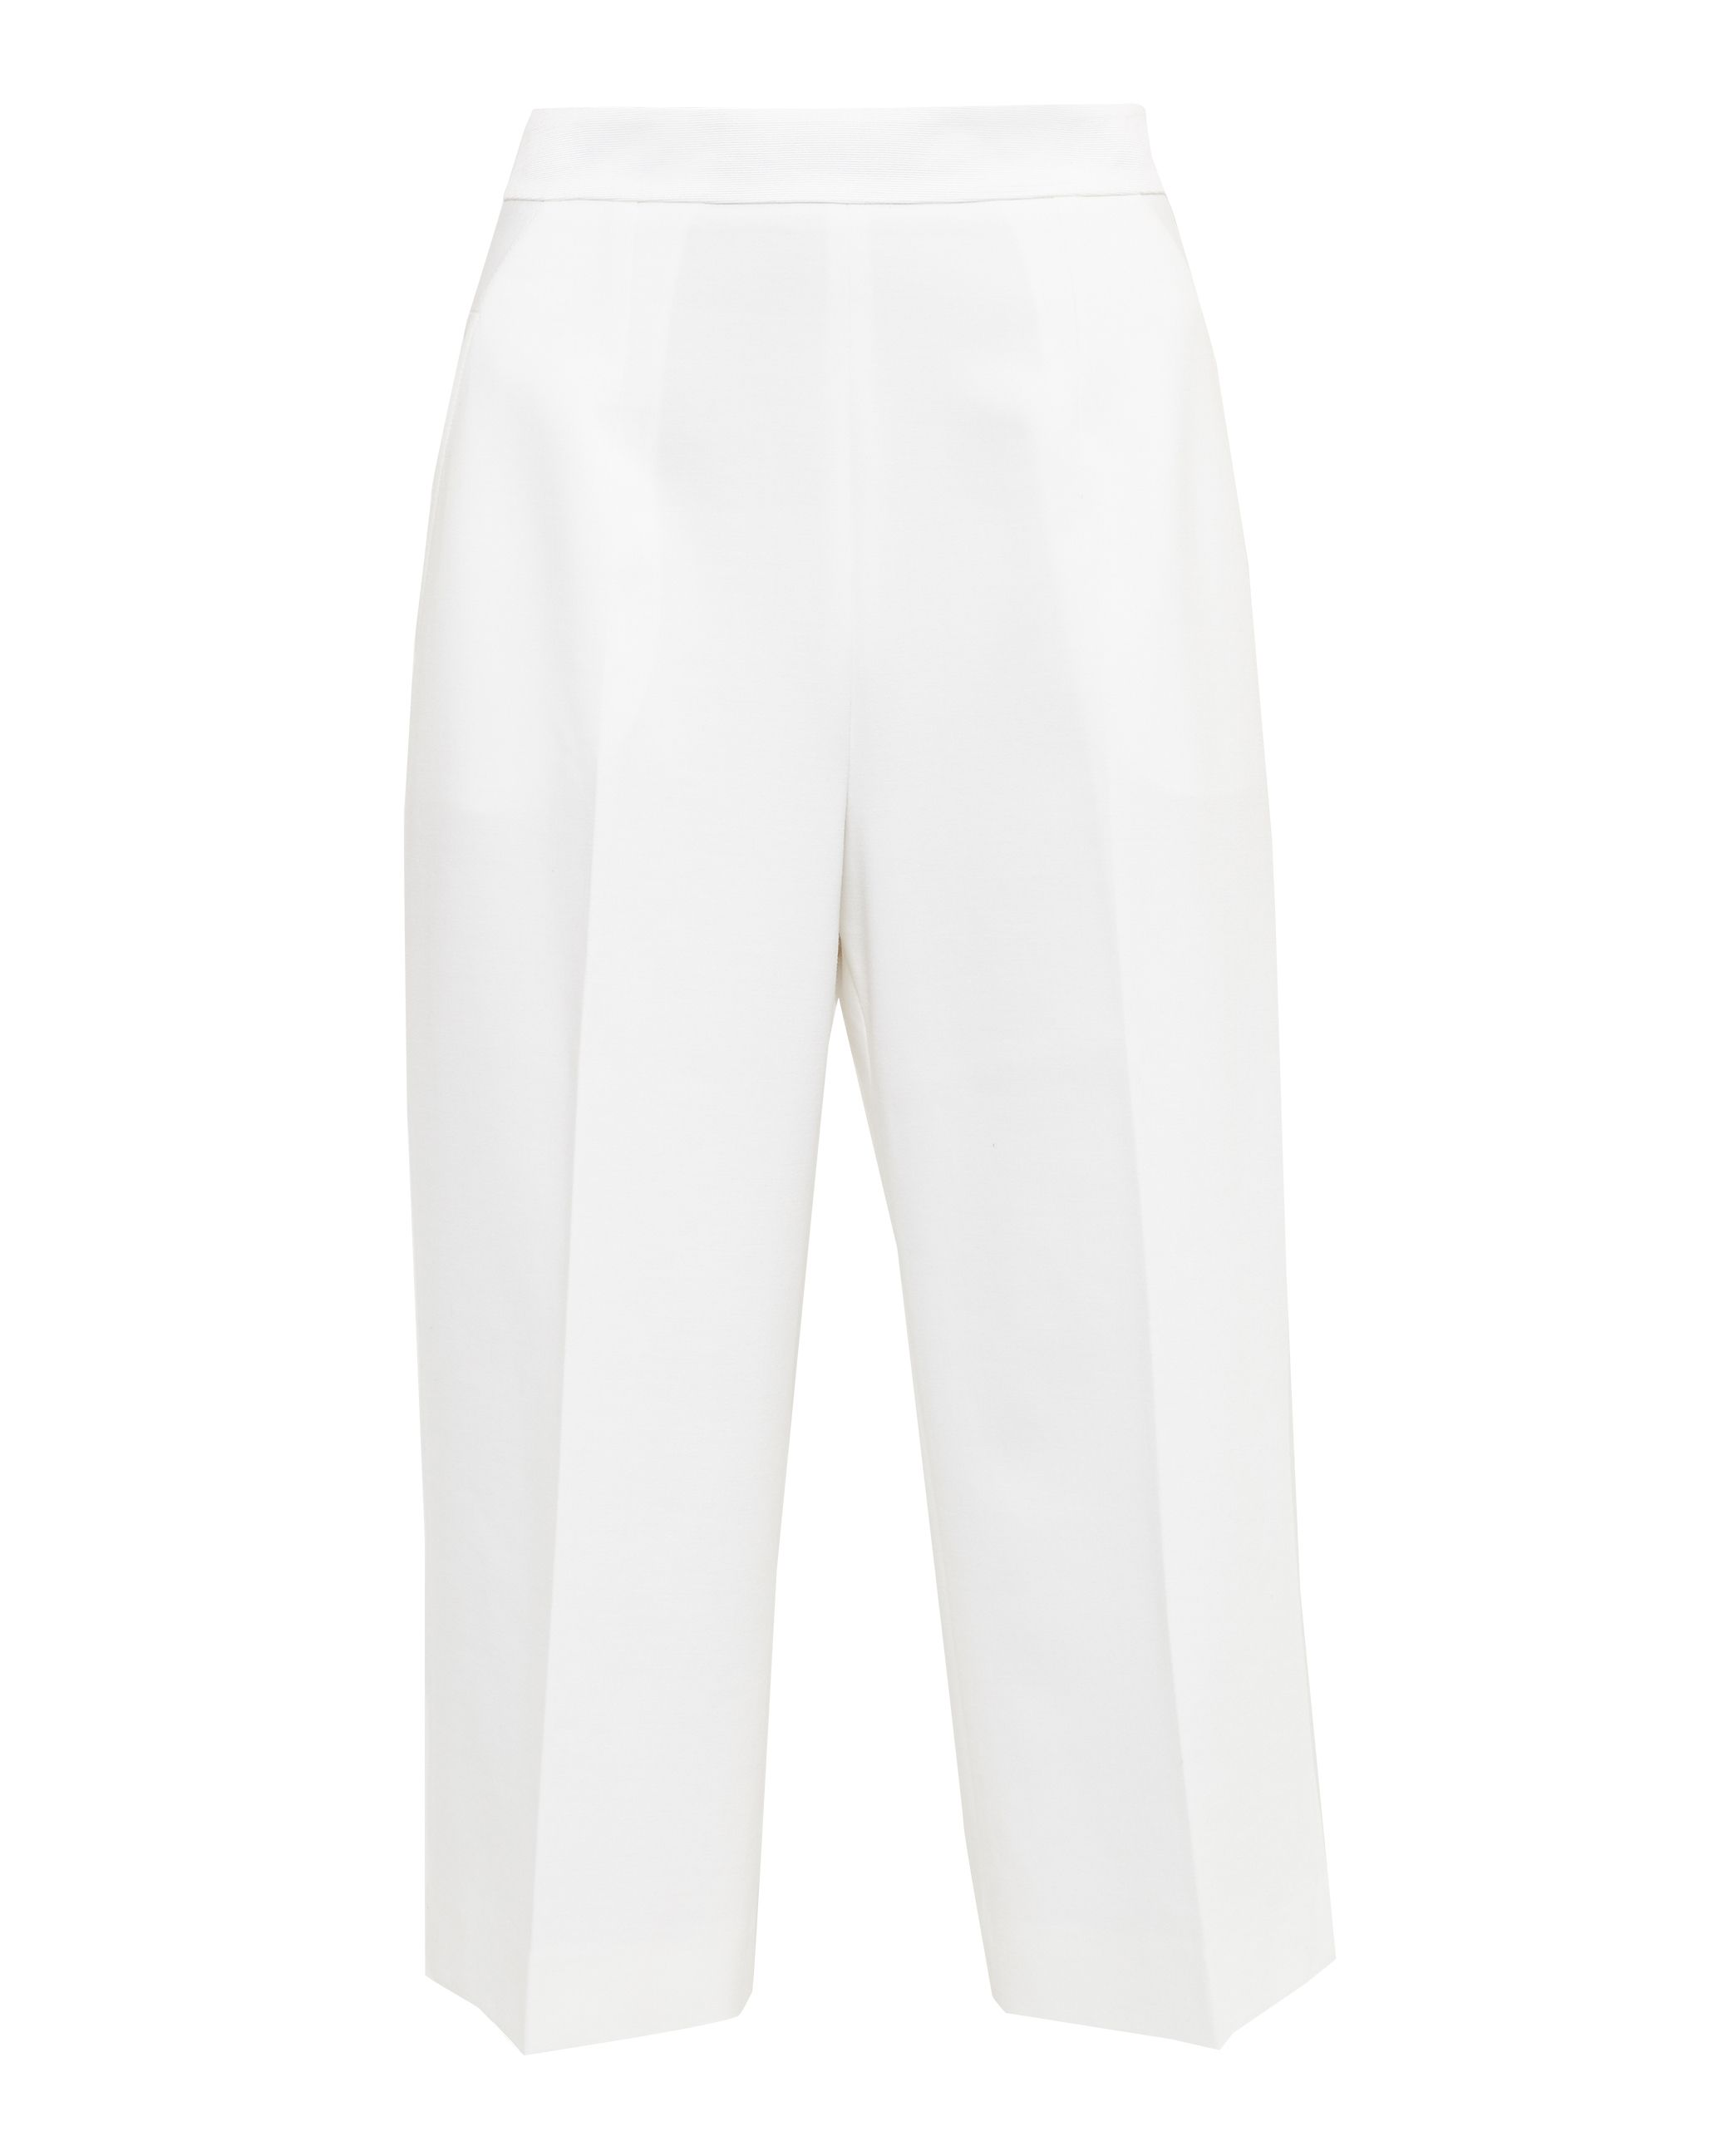 Ted Baker Orderat High Waisted Cullotes, White